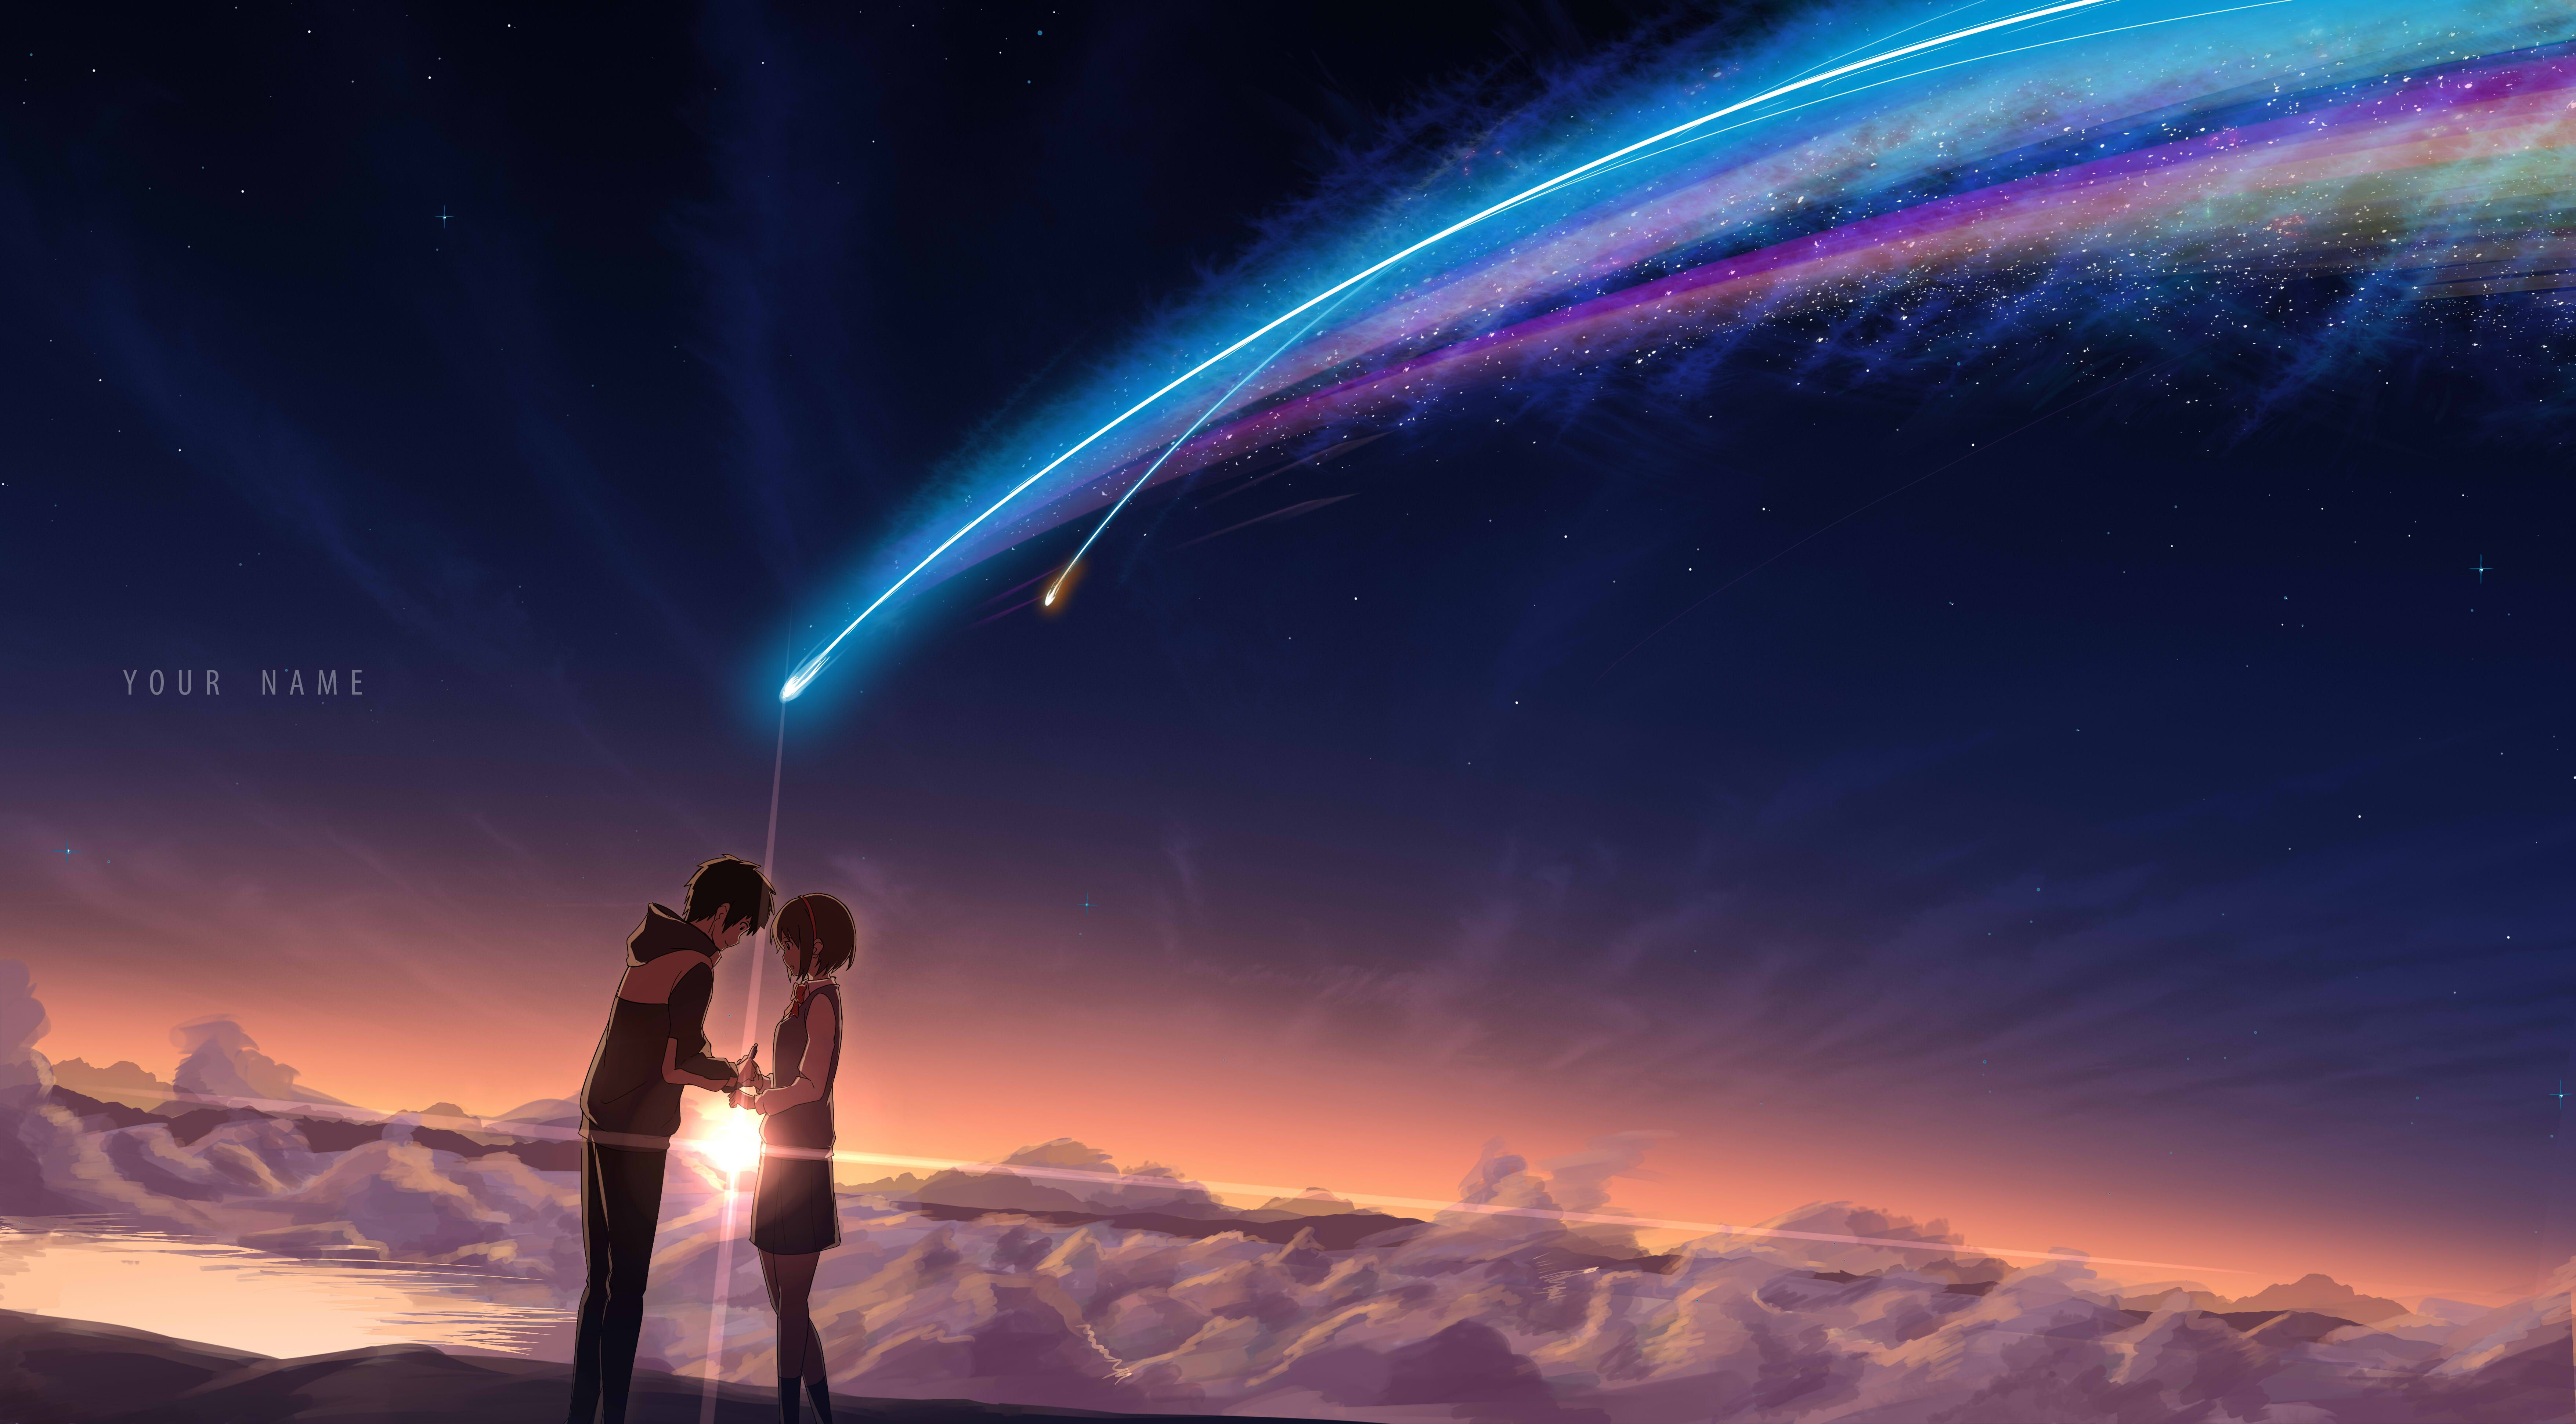 Pixiv Is An Illustration Community Service Where You Can Post And Enjoy Creative Work A Large Variety Of Work Is Uploaded And User Organized 新海 君の名は 背景 空イラスト